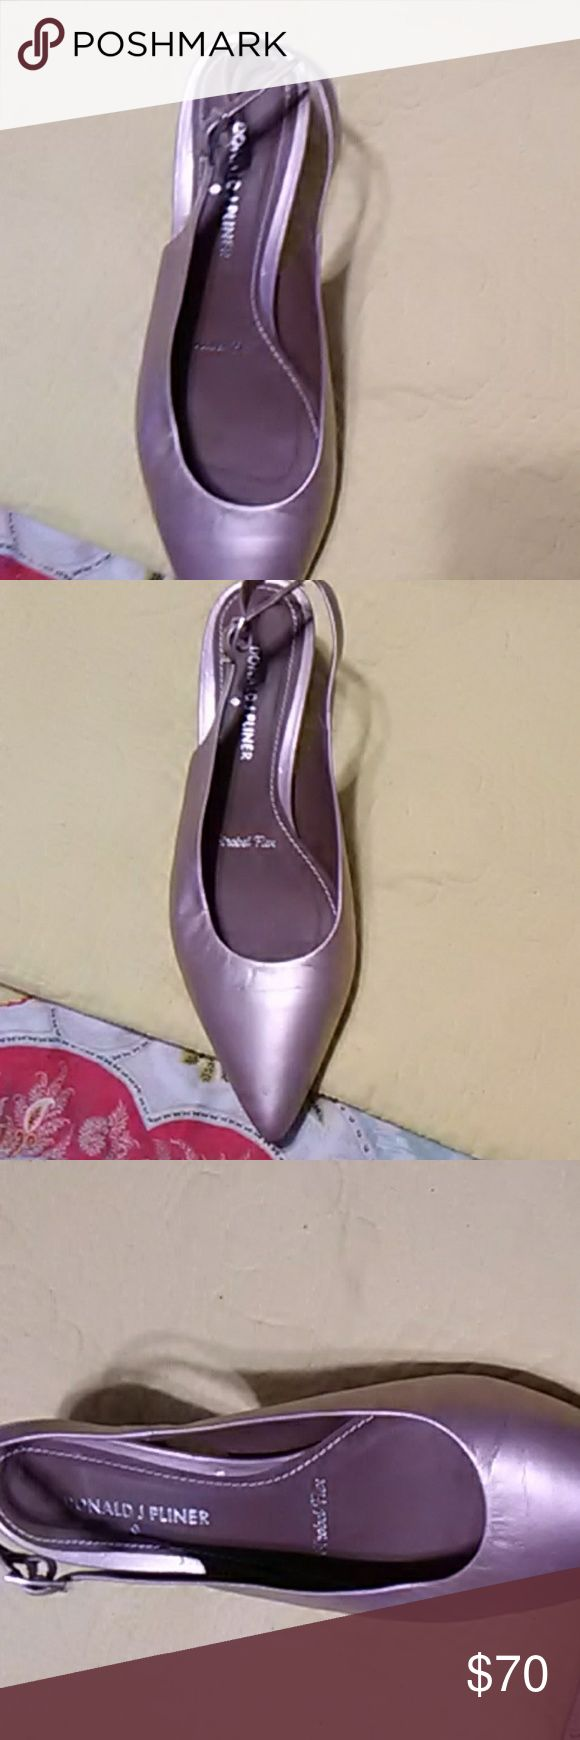 Pair of Donald J  Pliner They are a low heel champagne color shoe Donald J. Pliner Shoes Flats & Loafers